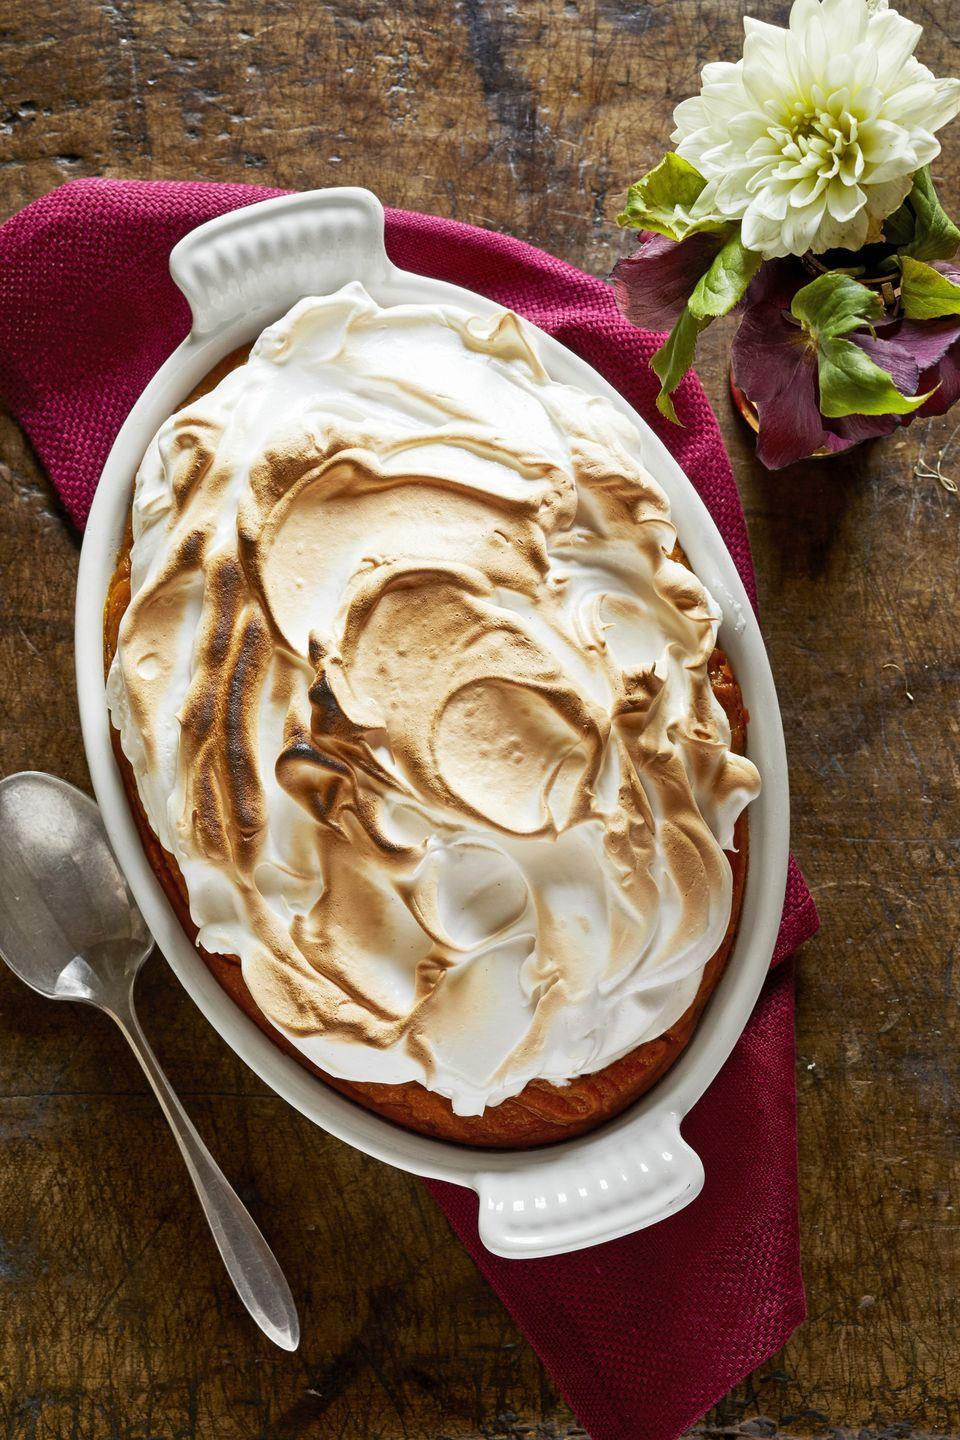 "<p>Here's a dish you can easily prep in advance. If there's space, you can try broiling the meringue when you arrive, but it doesn't lose much being baked ahead of time.</p><p><strong><a href=""https://www.countryliving.com/food-drinks/a29133187/sweet-potato-casserole-with-homemade-marshmallow/"" rel=""nofollow noopener"" target=""_blank"" data-ylk=""slk:Get the recipe"" class=""link rapid-noclick-resp"">Get the recipe</a>.</strong></p><p><a class=""link rapid-noclick-resp"" href=""https://www.amazon.com/Regalo-HW1236-Casserole-Trip-Retains-Temperature/dp/B07NXV6F5R/?tag=syn-yahoo-20&ascsubtag=%5Bartid%7C10050.g.34553078%5Bsrc%7Cyahoo-us"" rel=""nofollow noopener"" target=""_blank"" data-ylk=""slk:SHOP PORTABLE CASSEROLE CARRIERS"">SHOP PORTABLE CASSEROLE CARRIERS</a></p>"